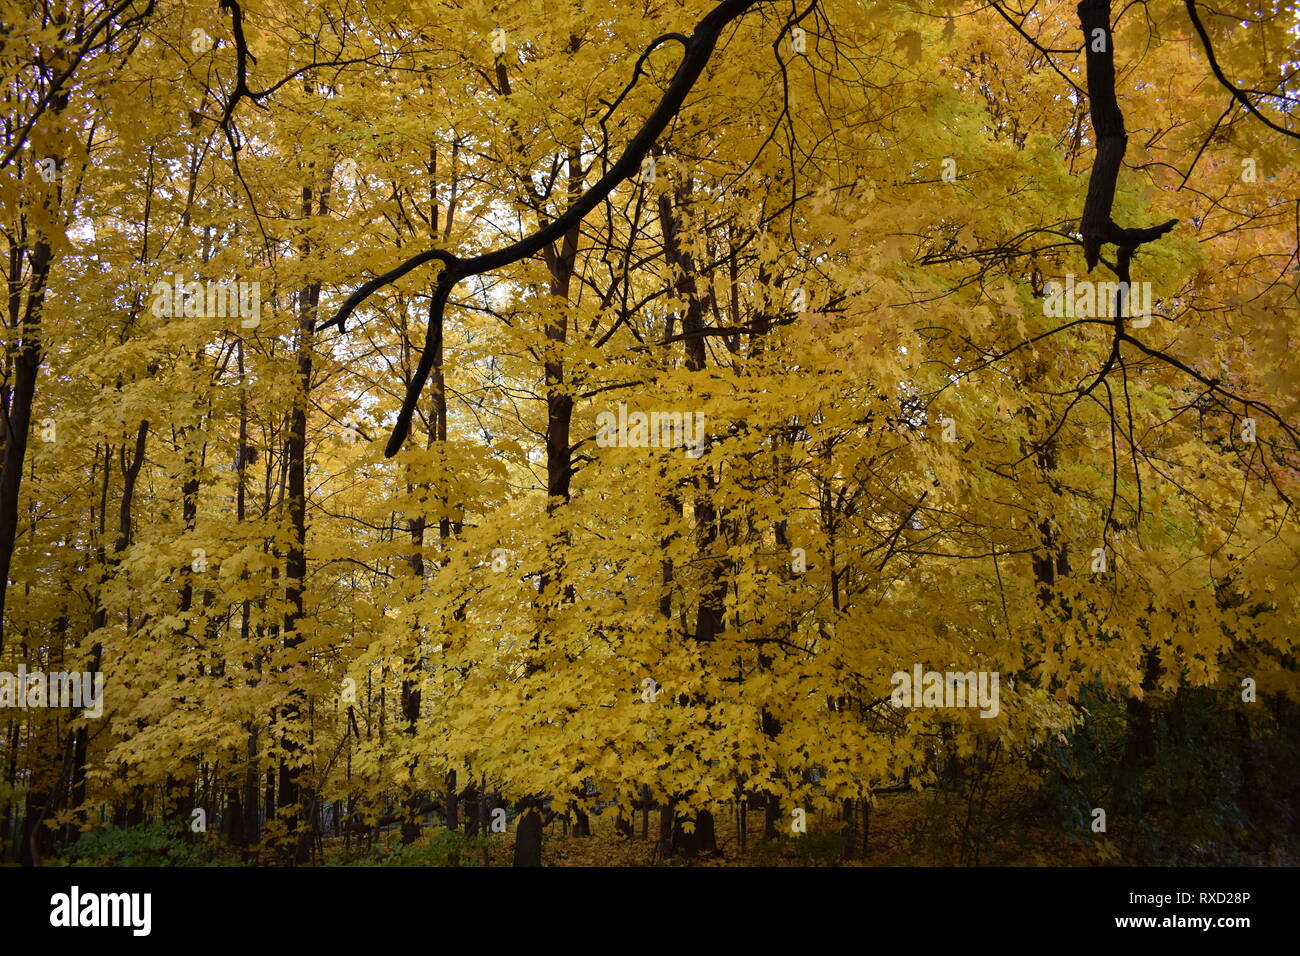 Fall Leaves and Trees in Aurora Illinois - Stock Image